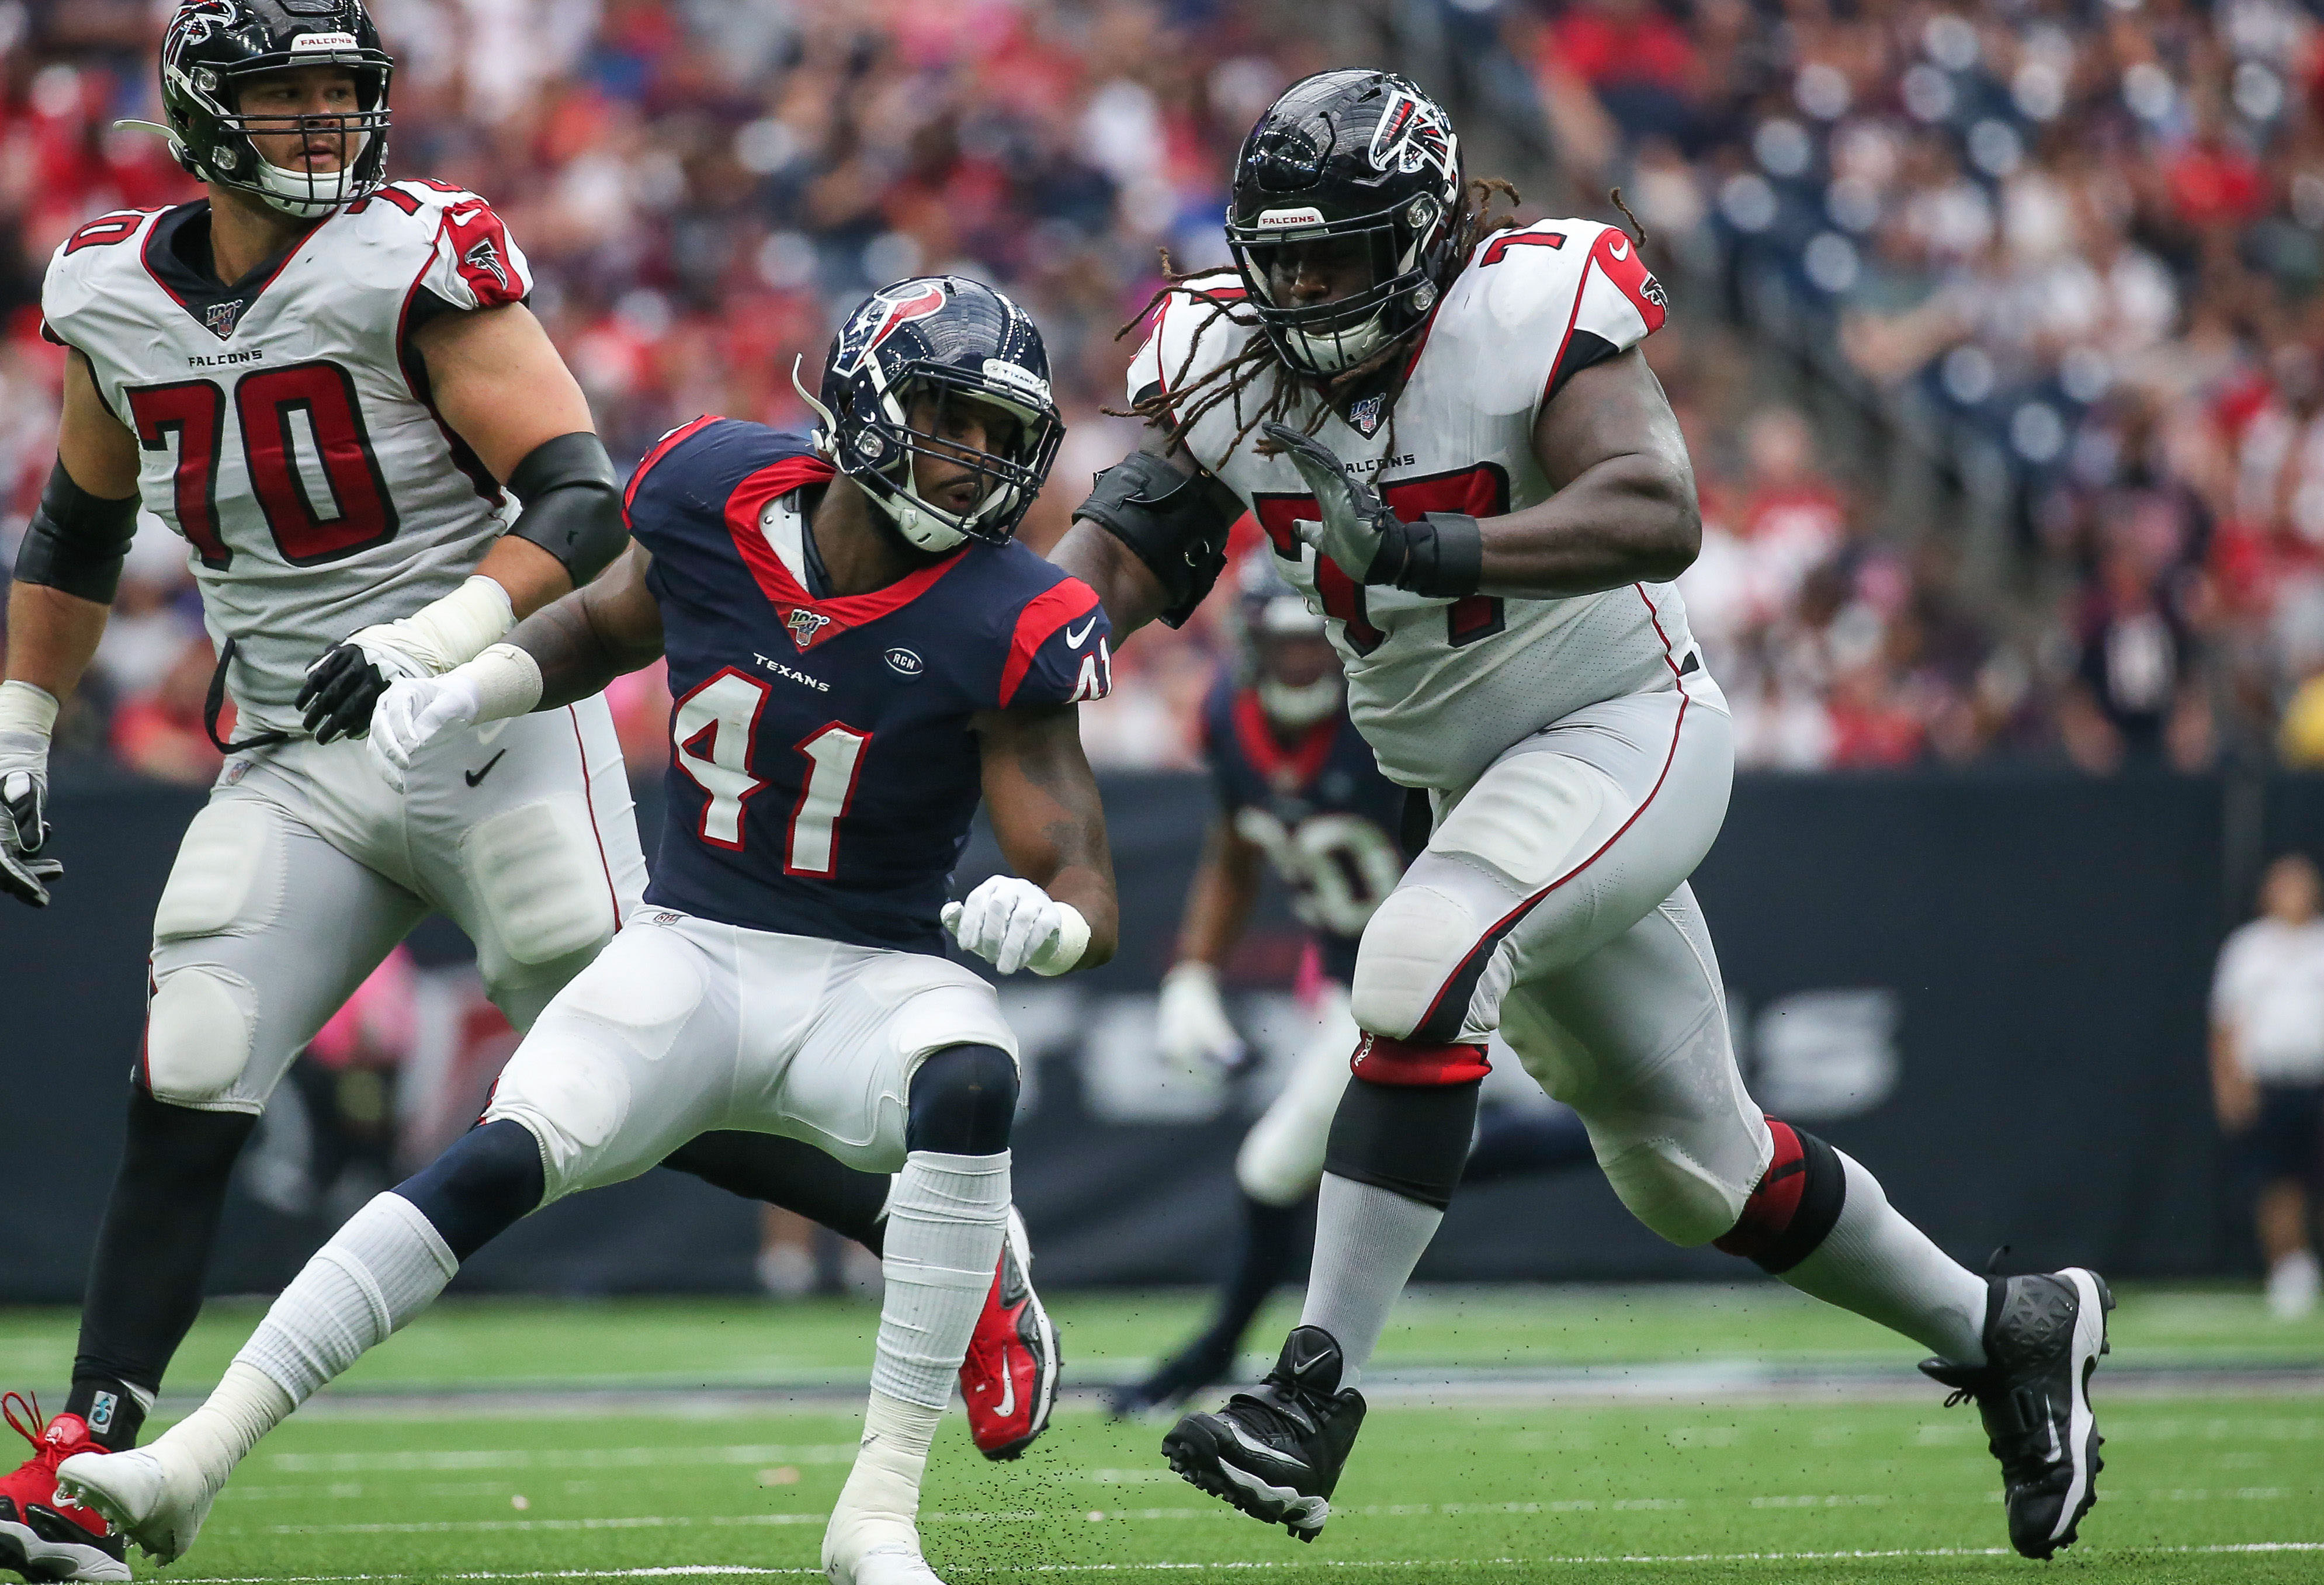 NFL: Atlanta Falcons at Houston Texans